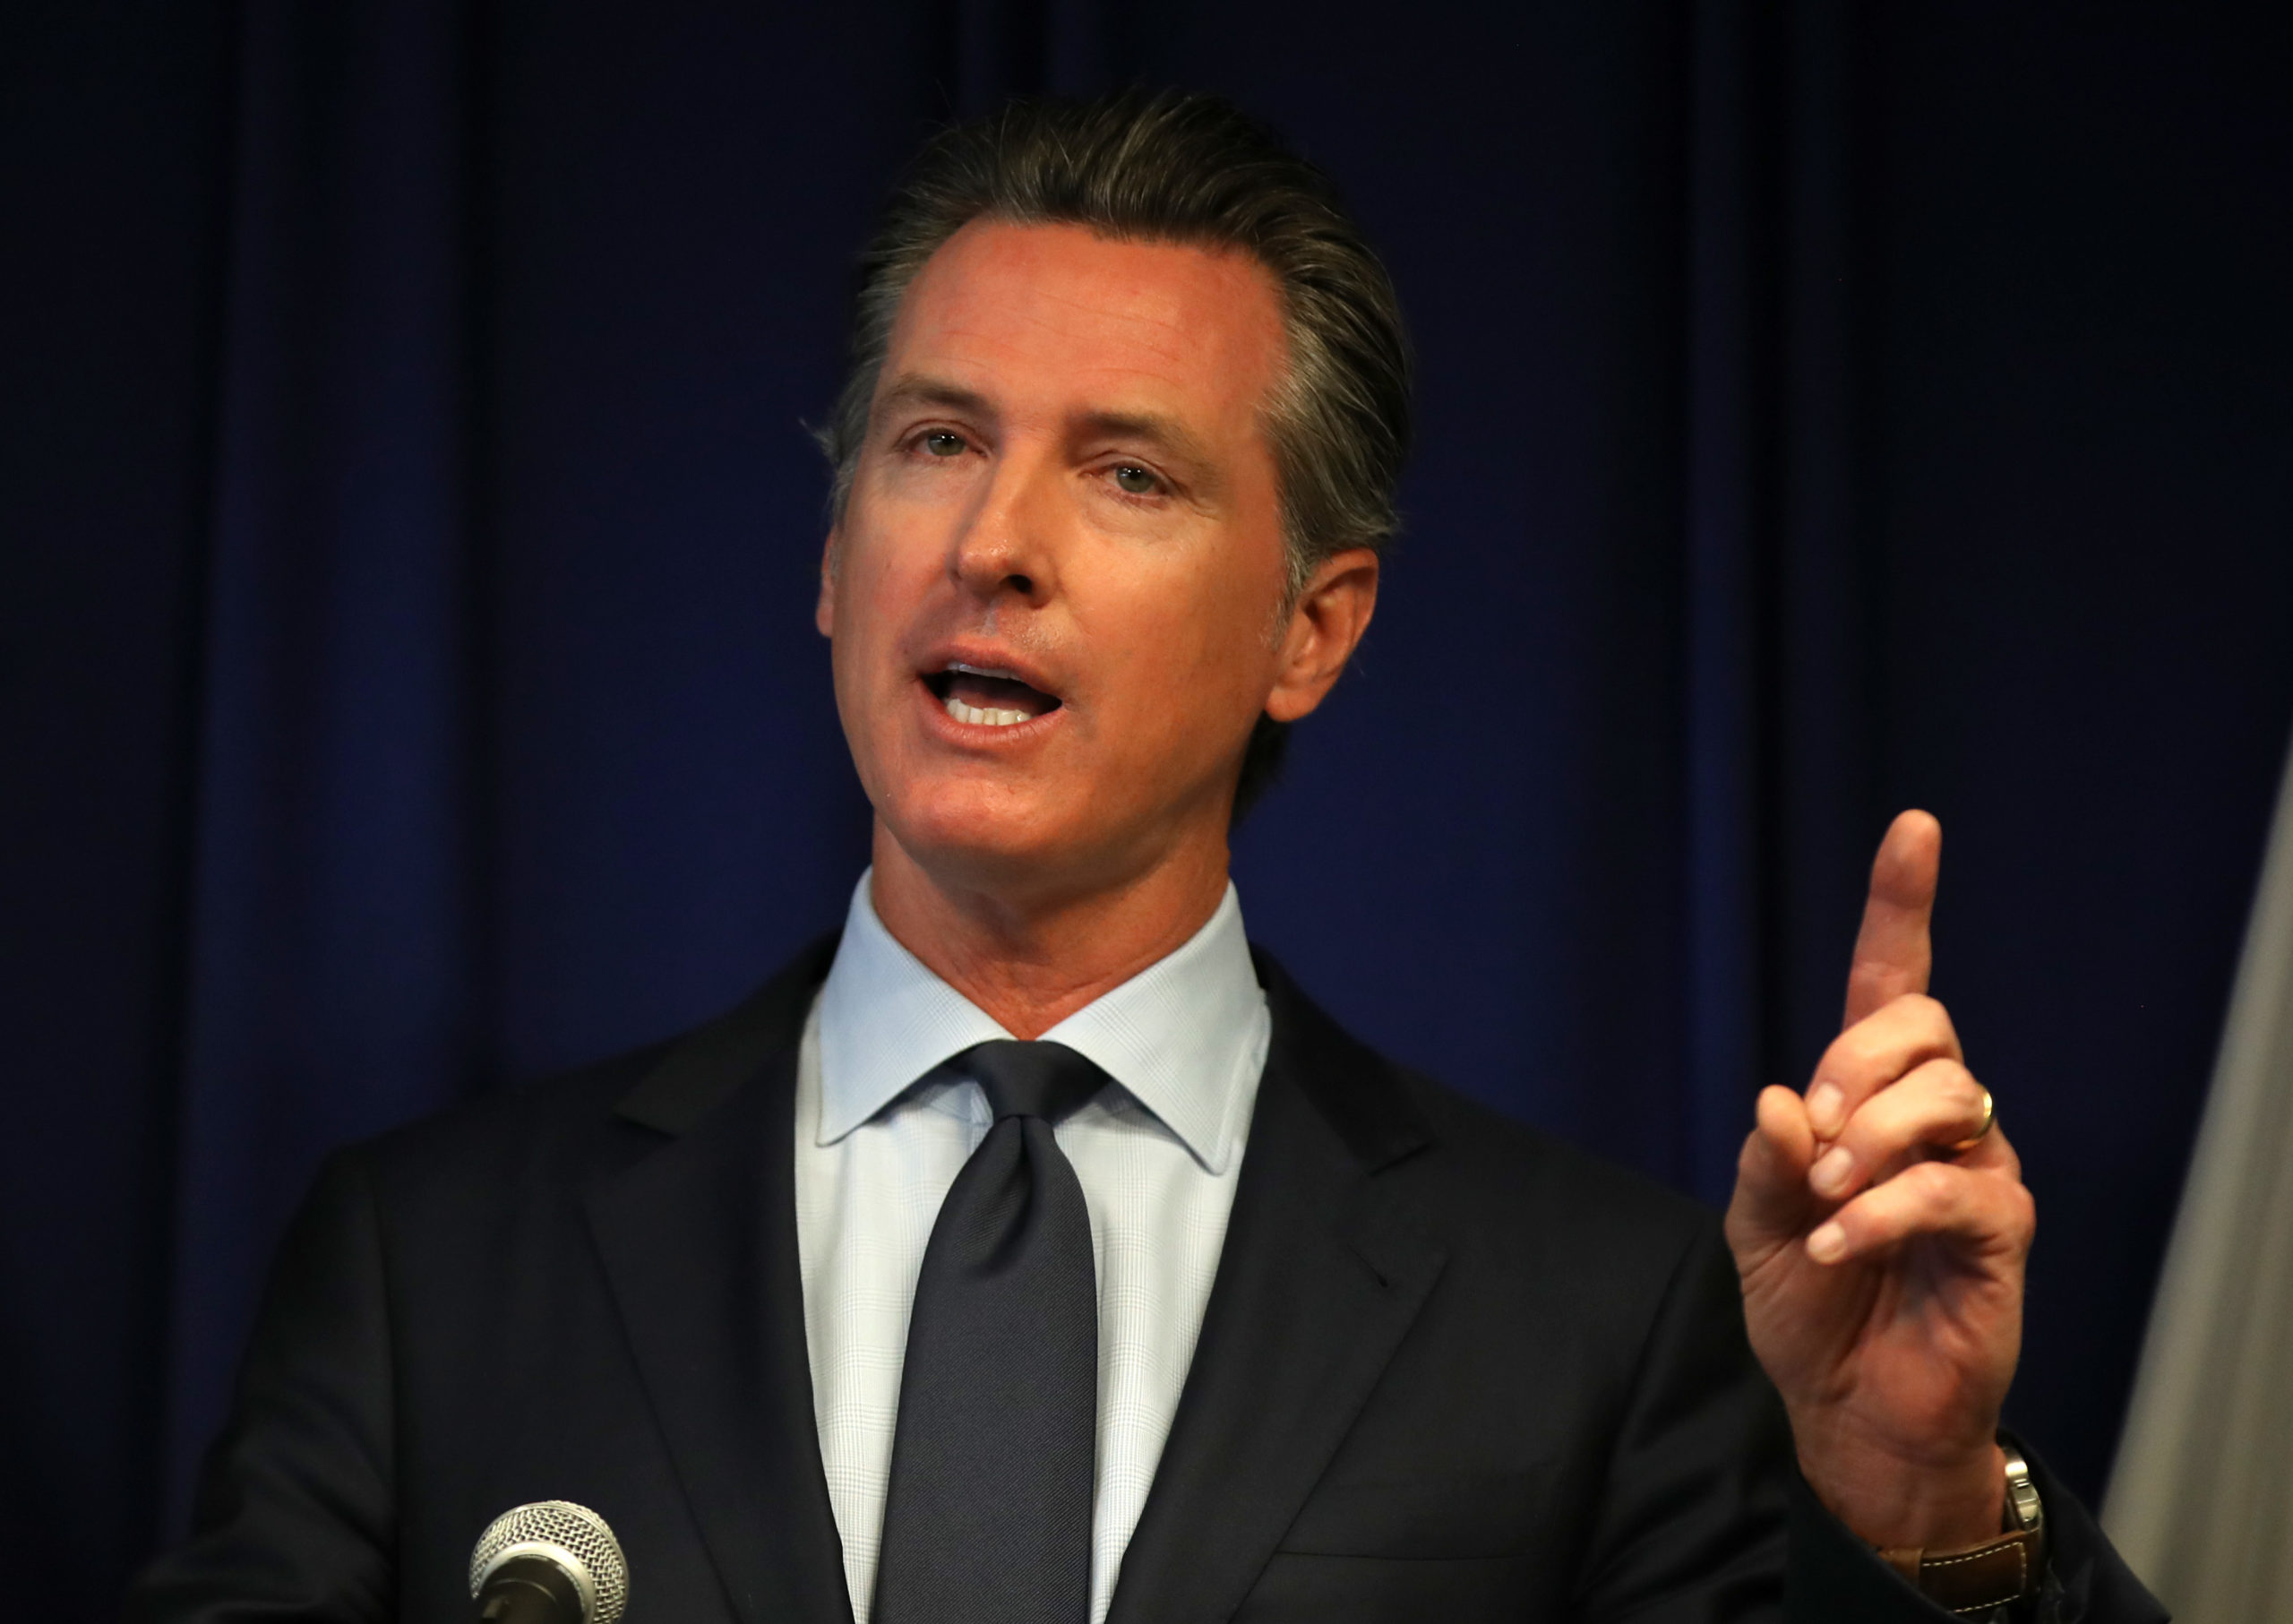 California Gov. Gavin Newsom speaks during a news conference at the California justice department on September 18, 2019 in Sacramento, California. (Photo by Justin Sullivan/Getty Images)